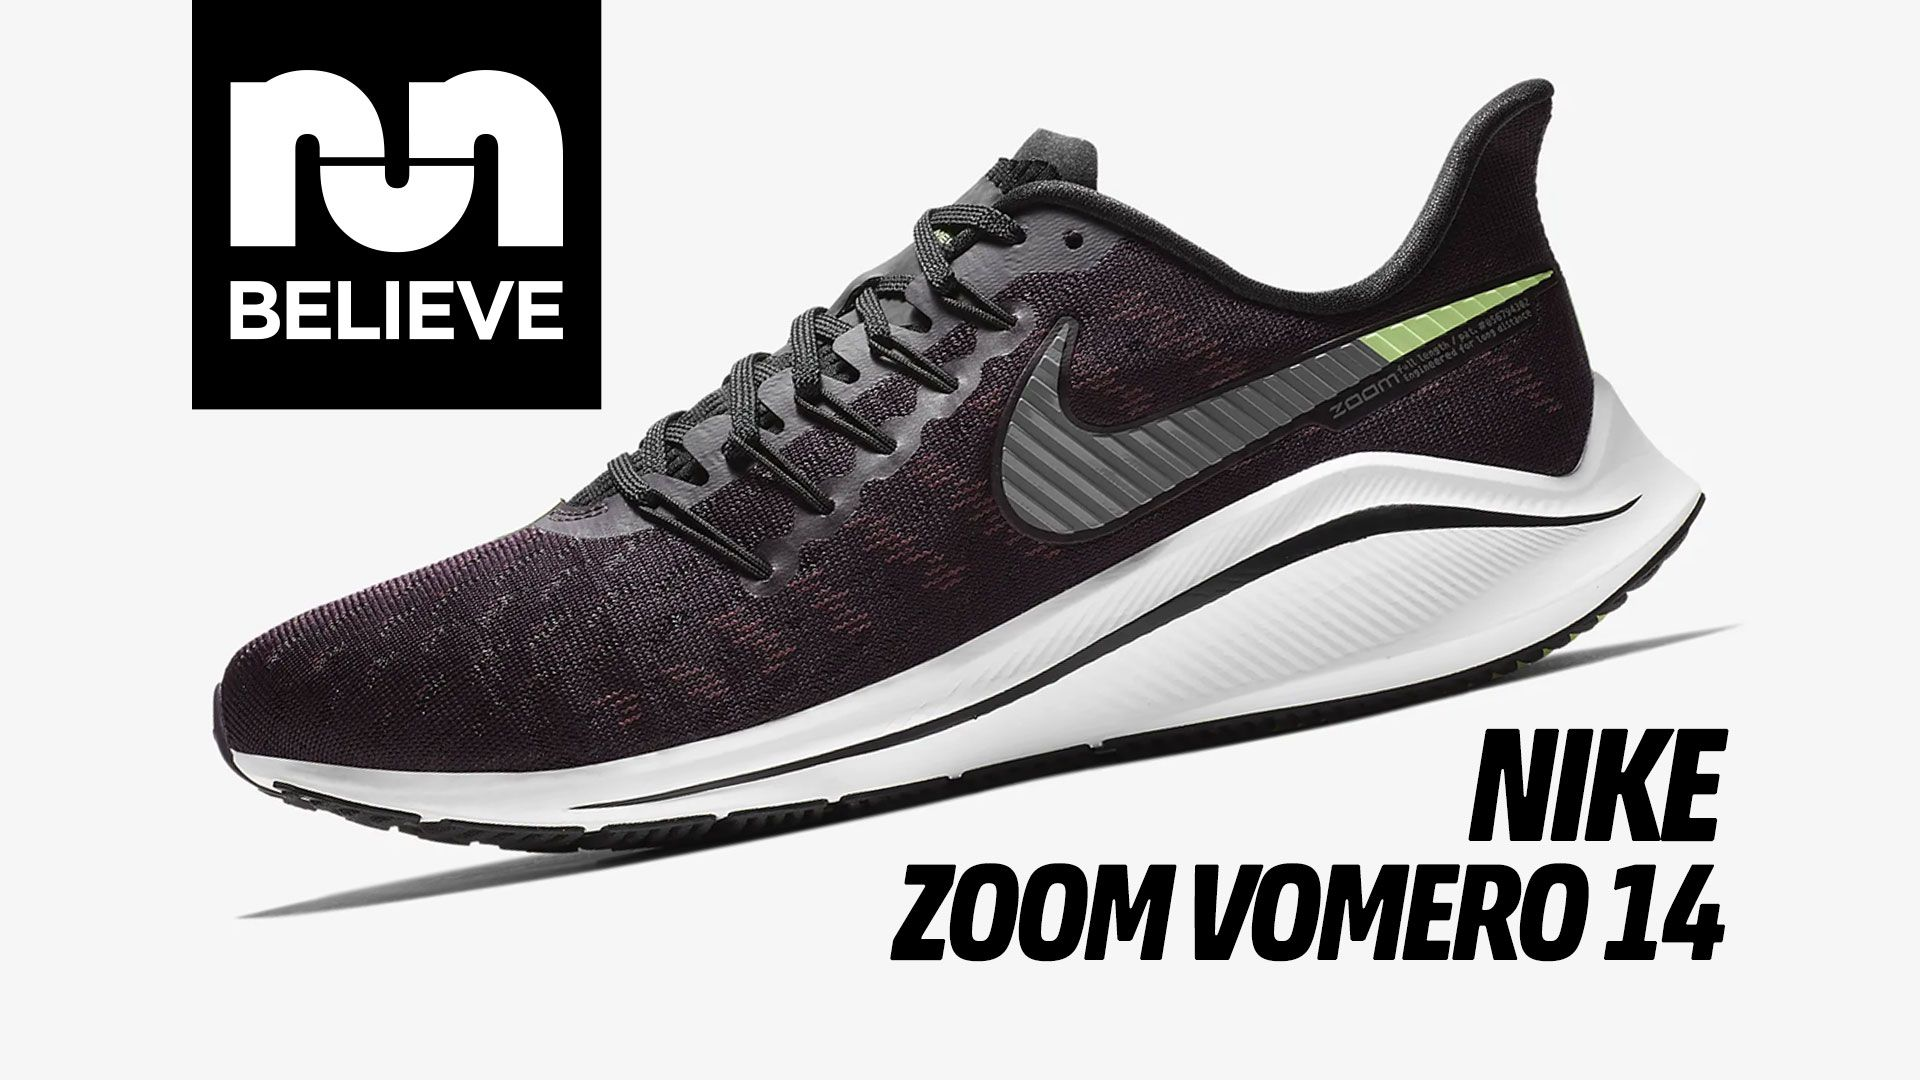 98af4f95255 Nike Zoom Vomero 14 Video Performance Review